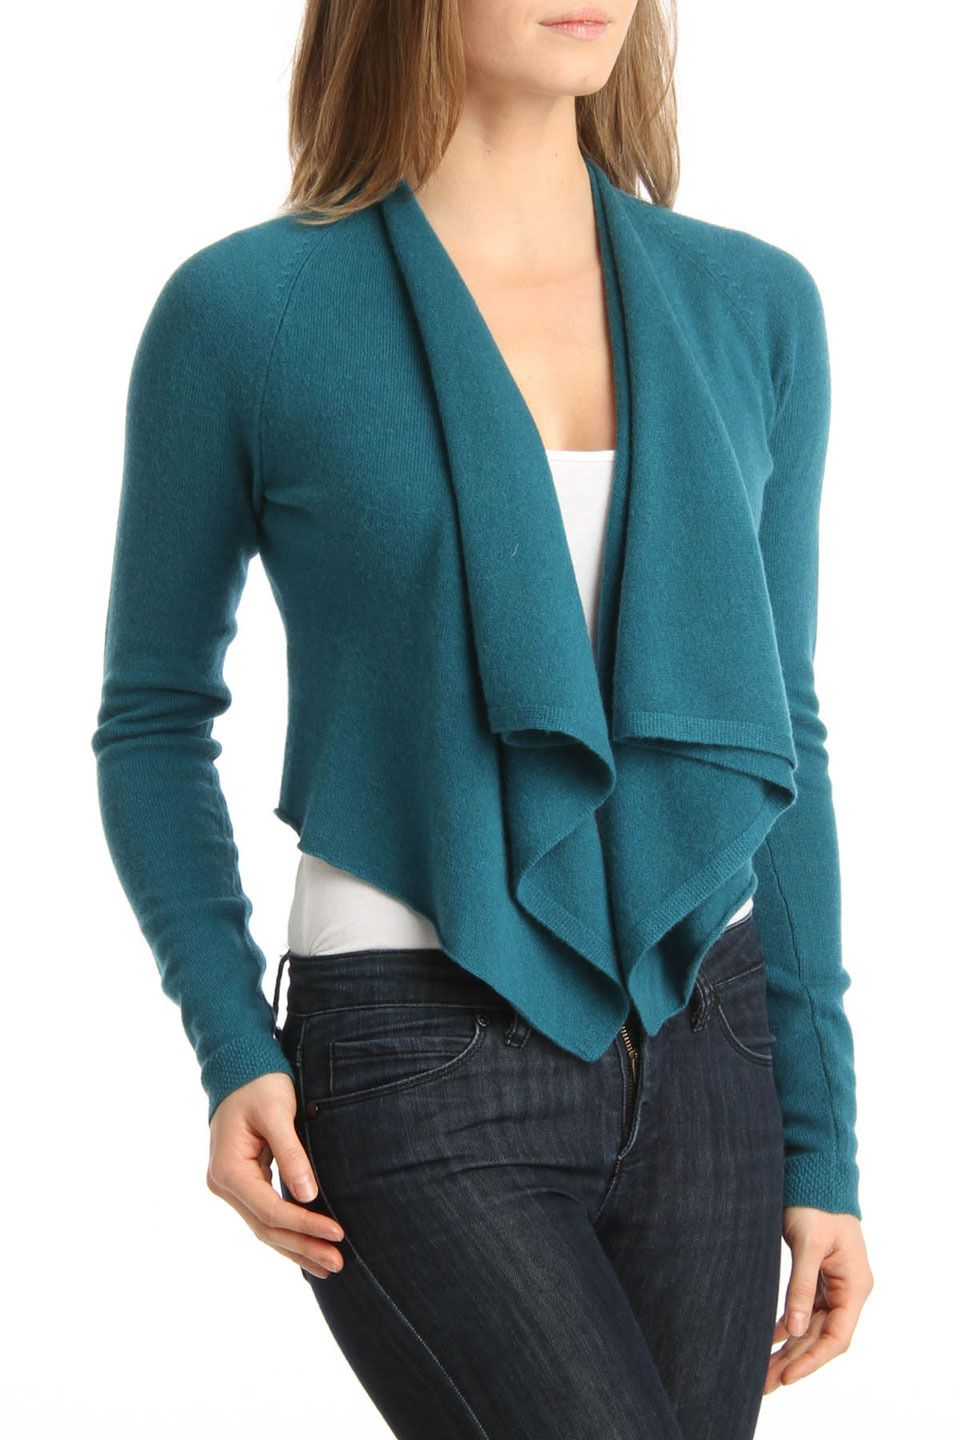 Lauren Hansen Ruffle Cashmere Cardigan In Turquoise | All things ...